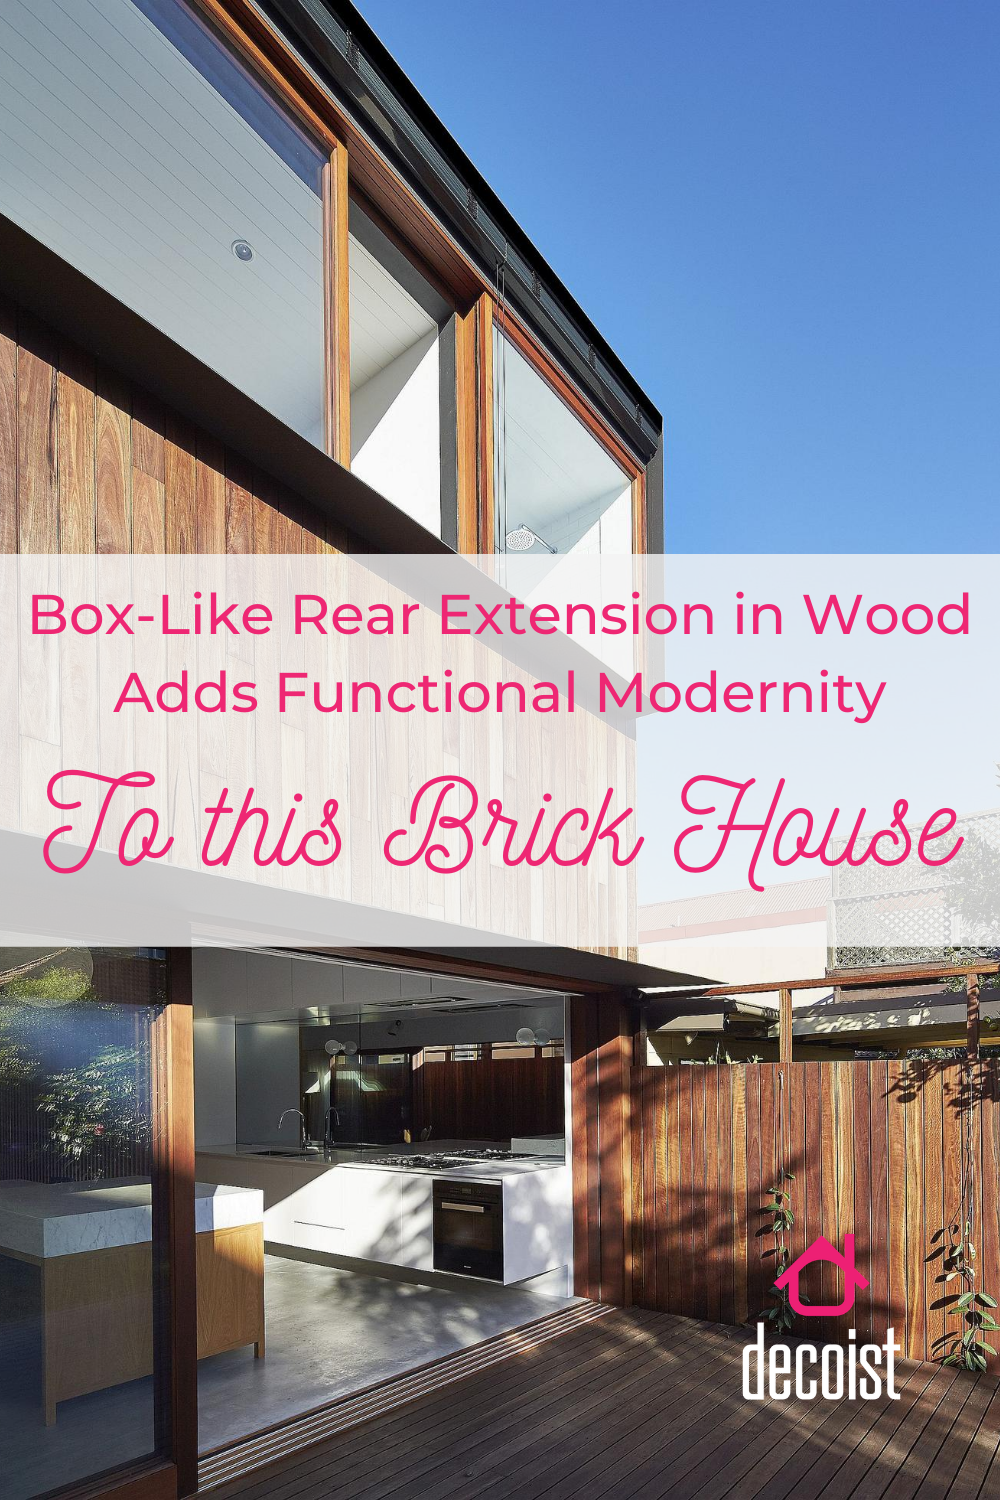 BoxLike Rear Extension in Wood Adds Functional Modernity